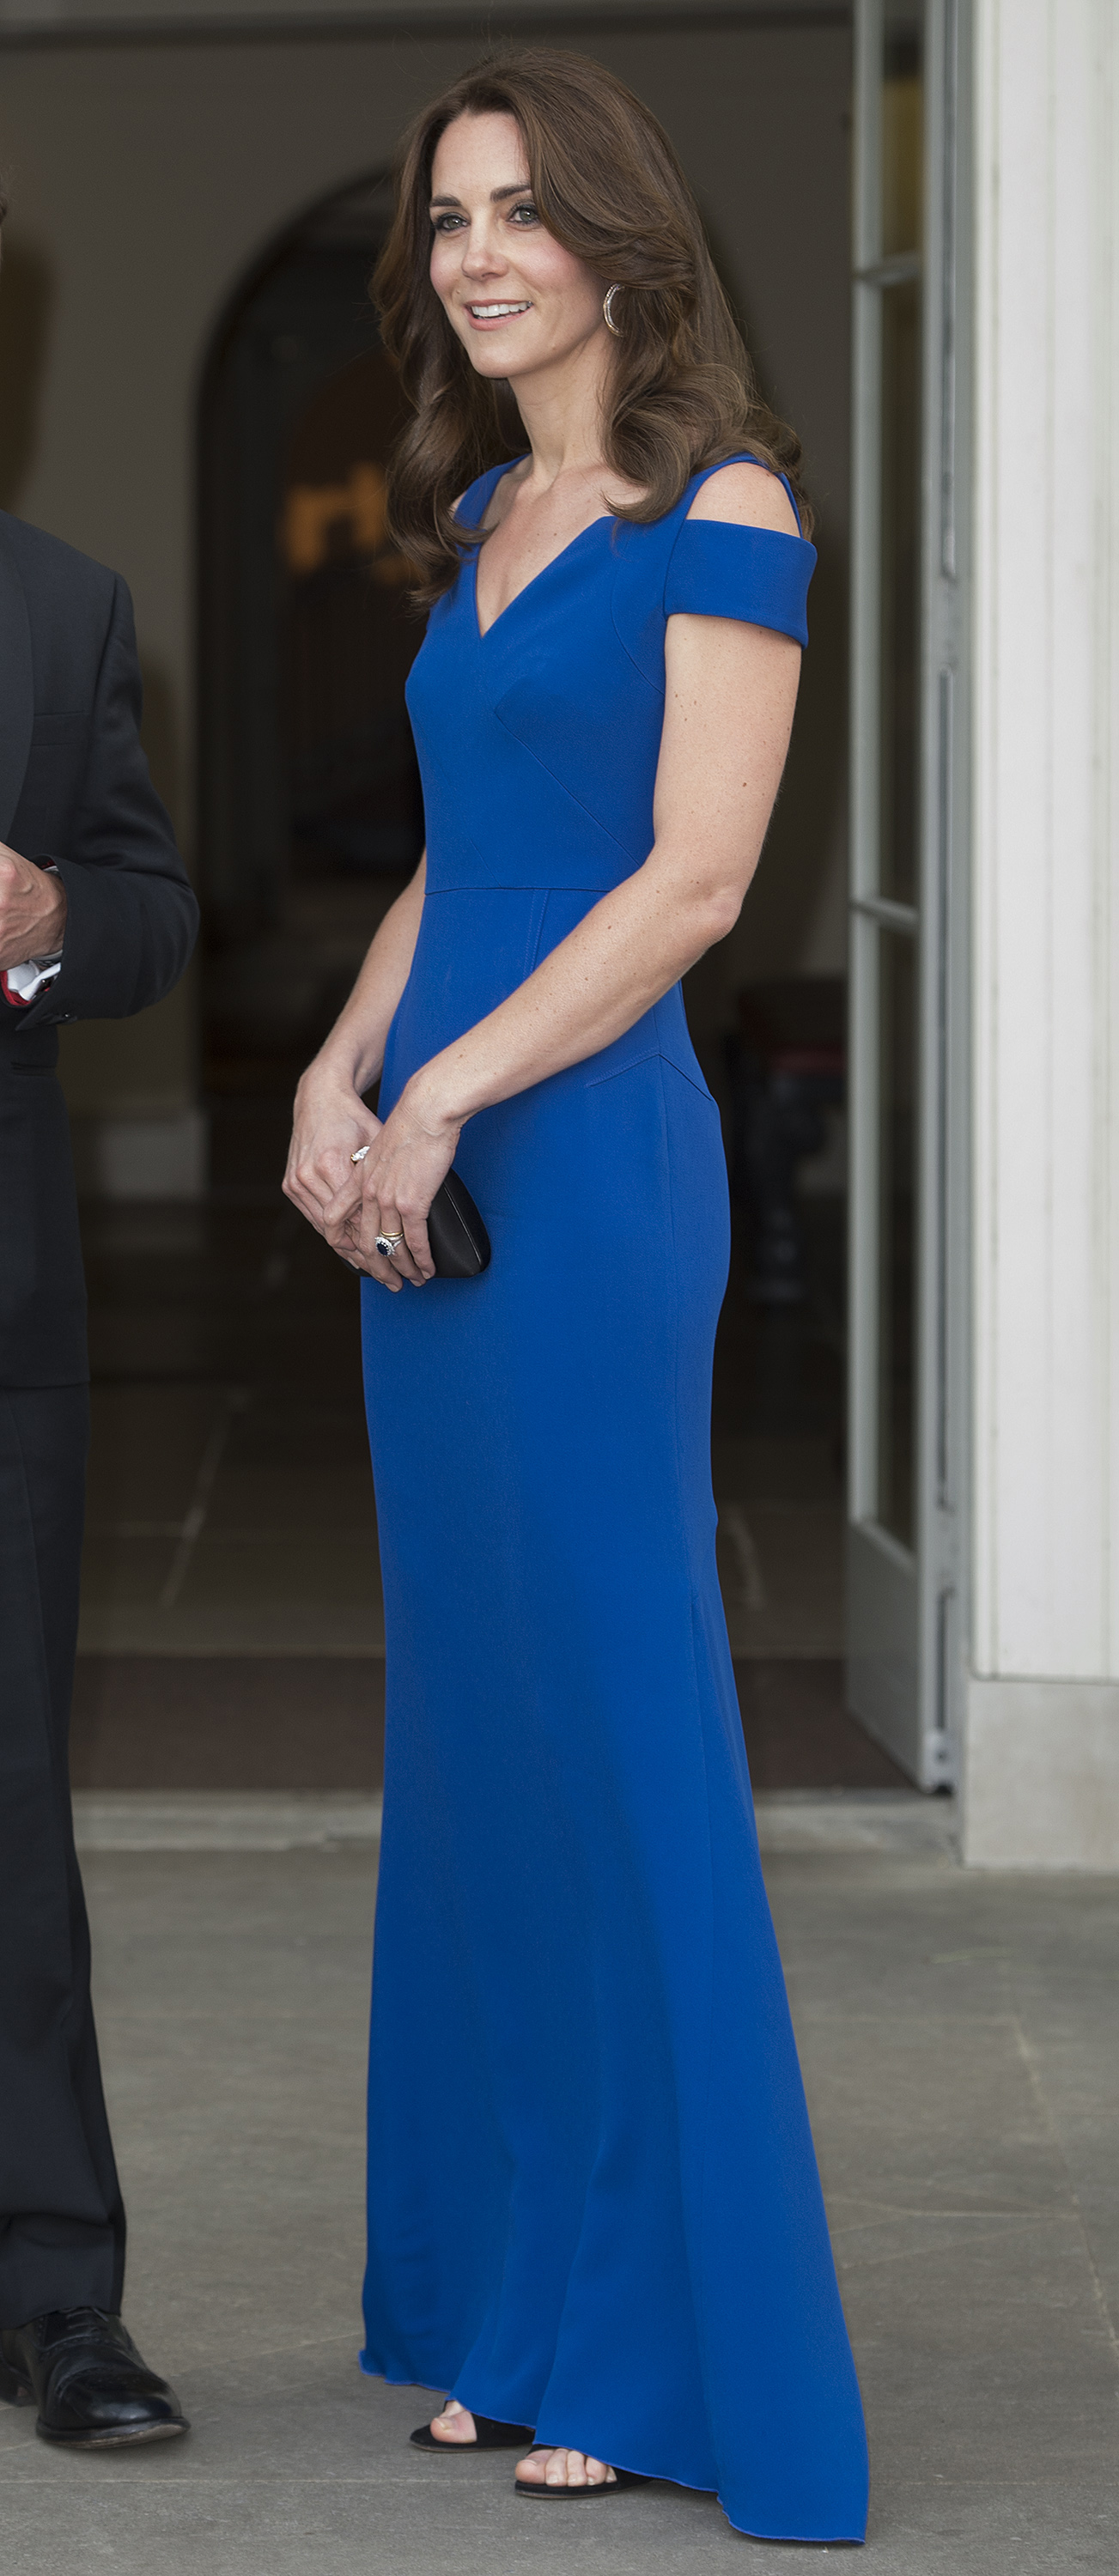 Catherine, Duchess of Cambridge attends SportsAid's 40th anniversary dinner in London on June 9, 2016.